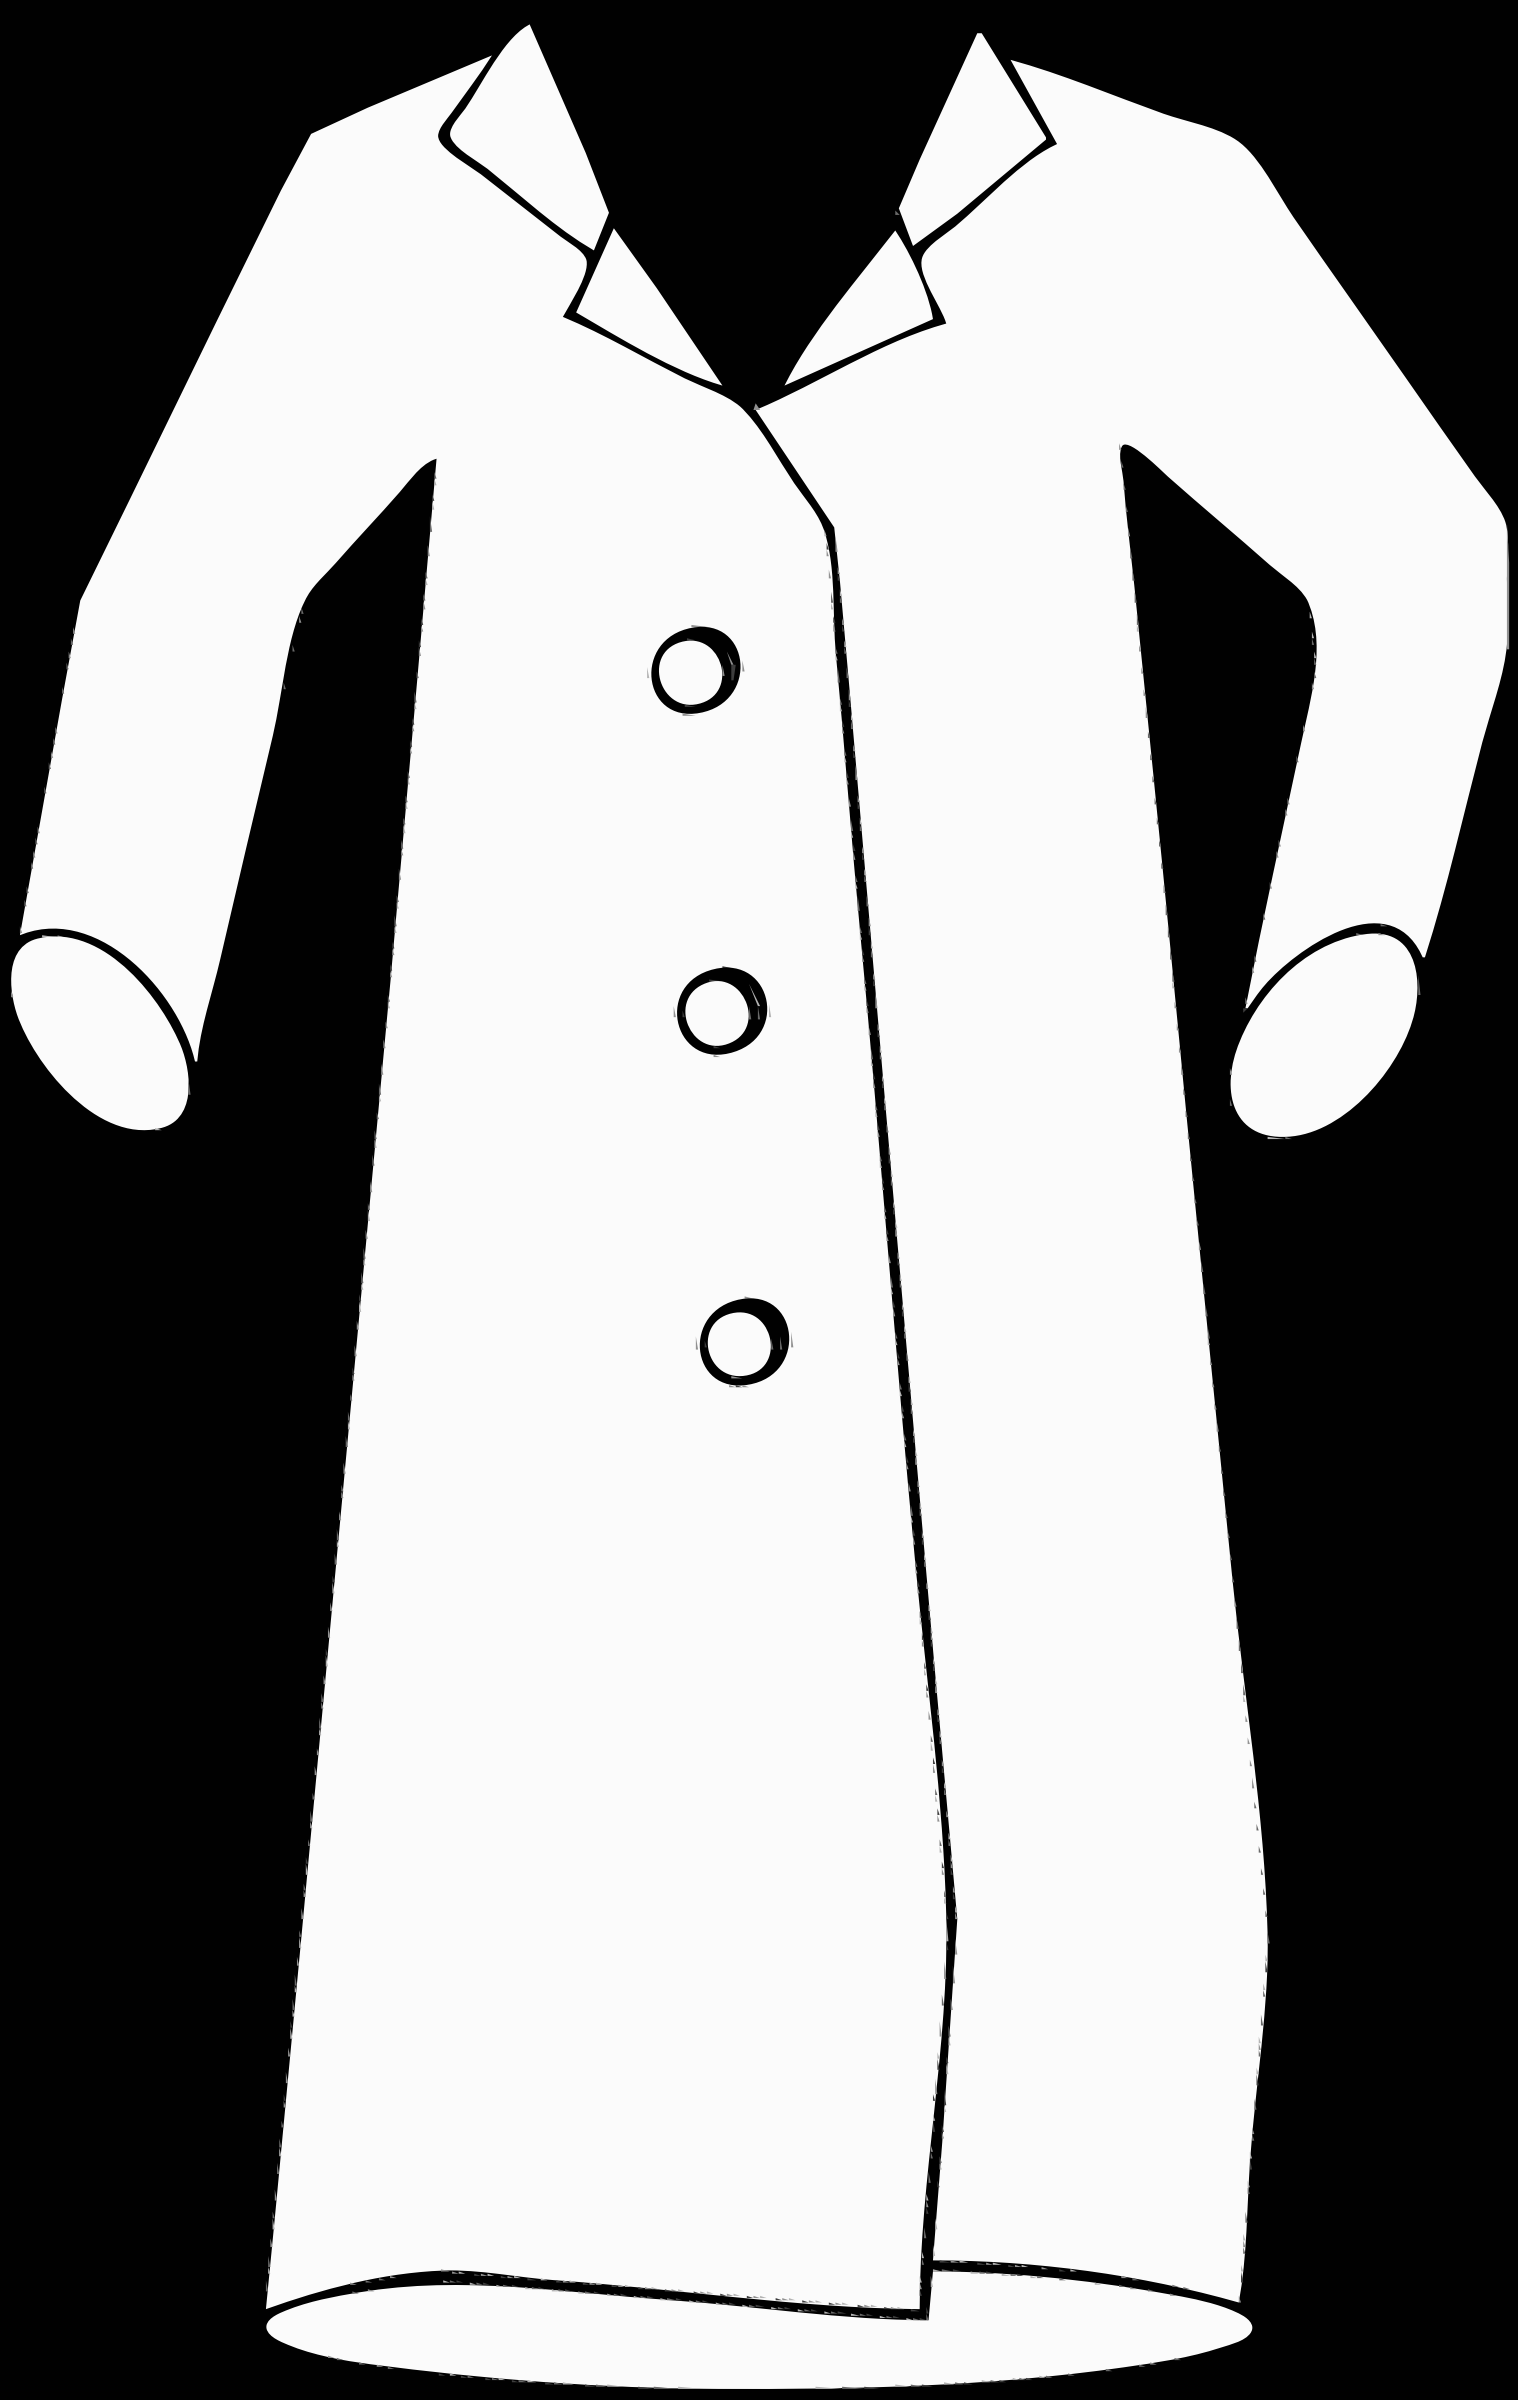 Lab Coat RoyaltyFree Vectors Illustrations and Photos